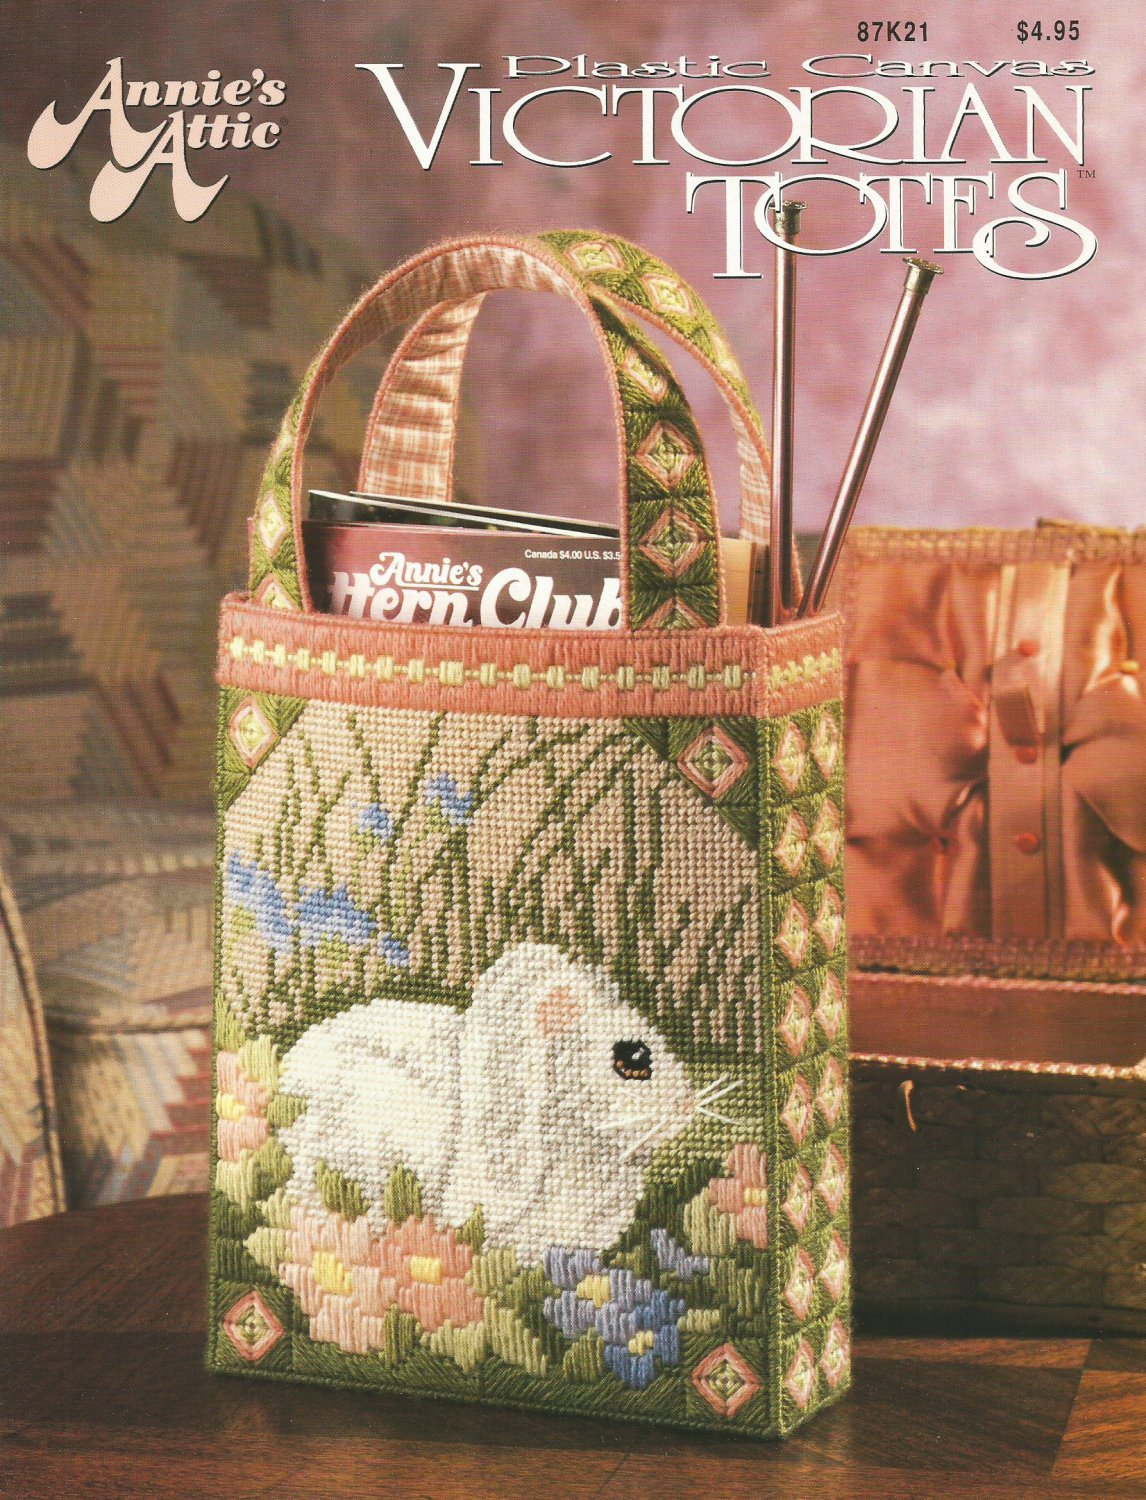 Annie S Culinary Creations Part 2: Annie's Attic Victorian Totes, Plastic Canvas Pattern